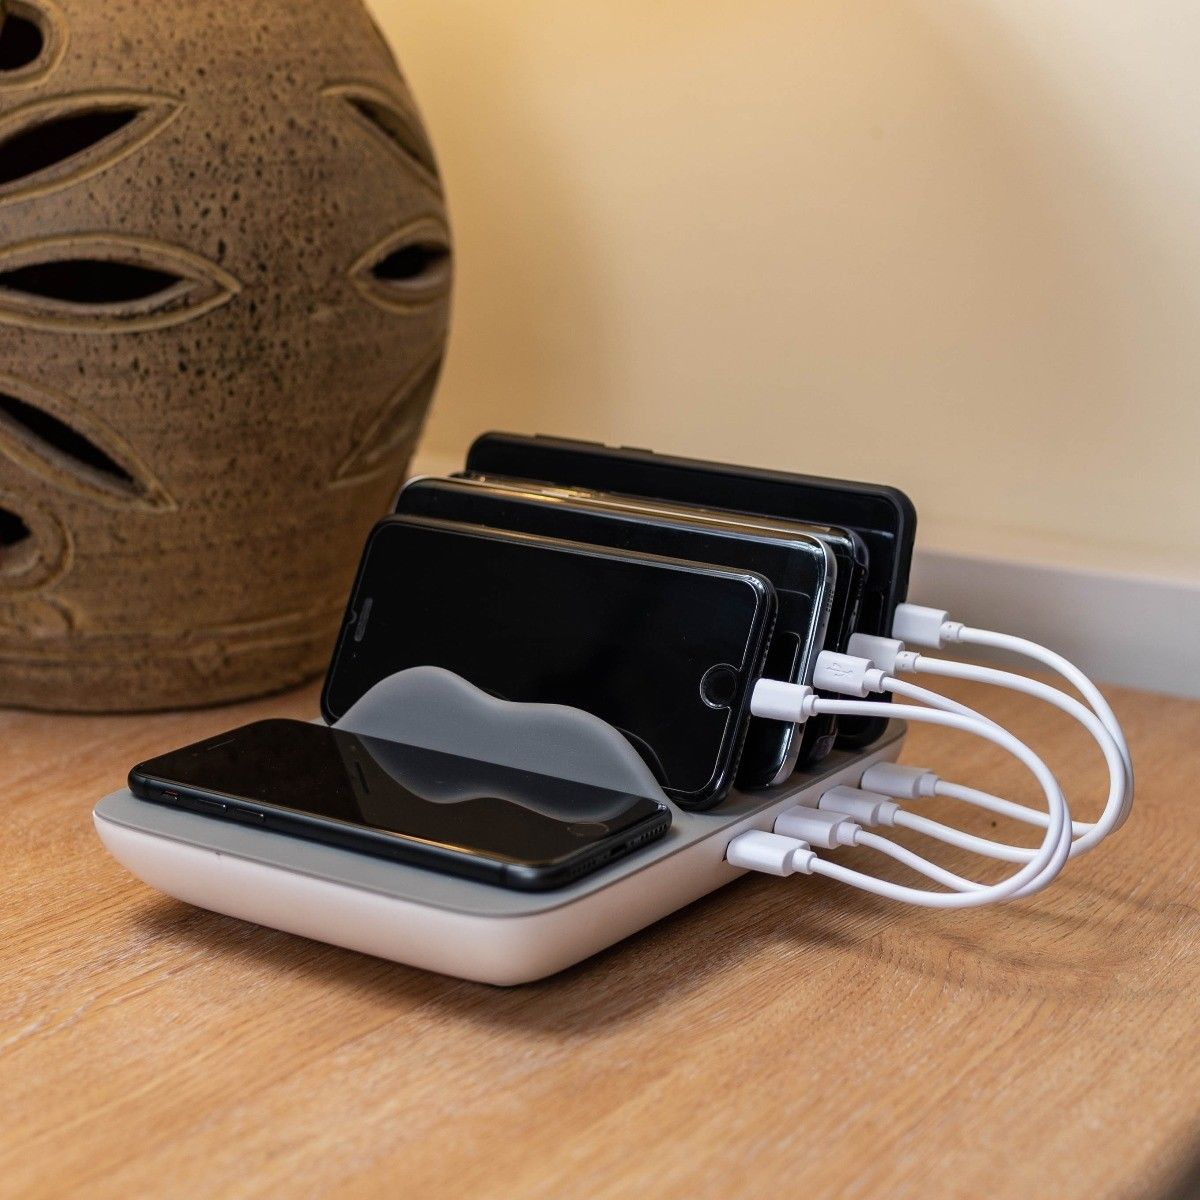 Beyond Multi Device Charging Station Wireless Pad 4 Fast Charge USB 6 FREE Cable